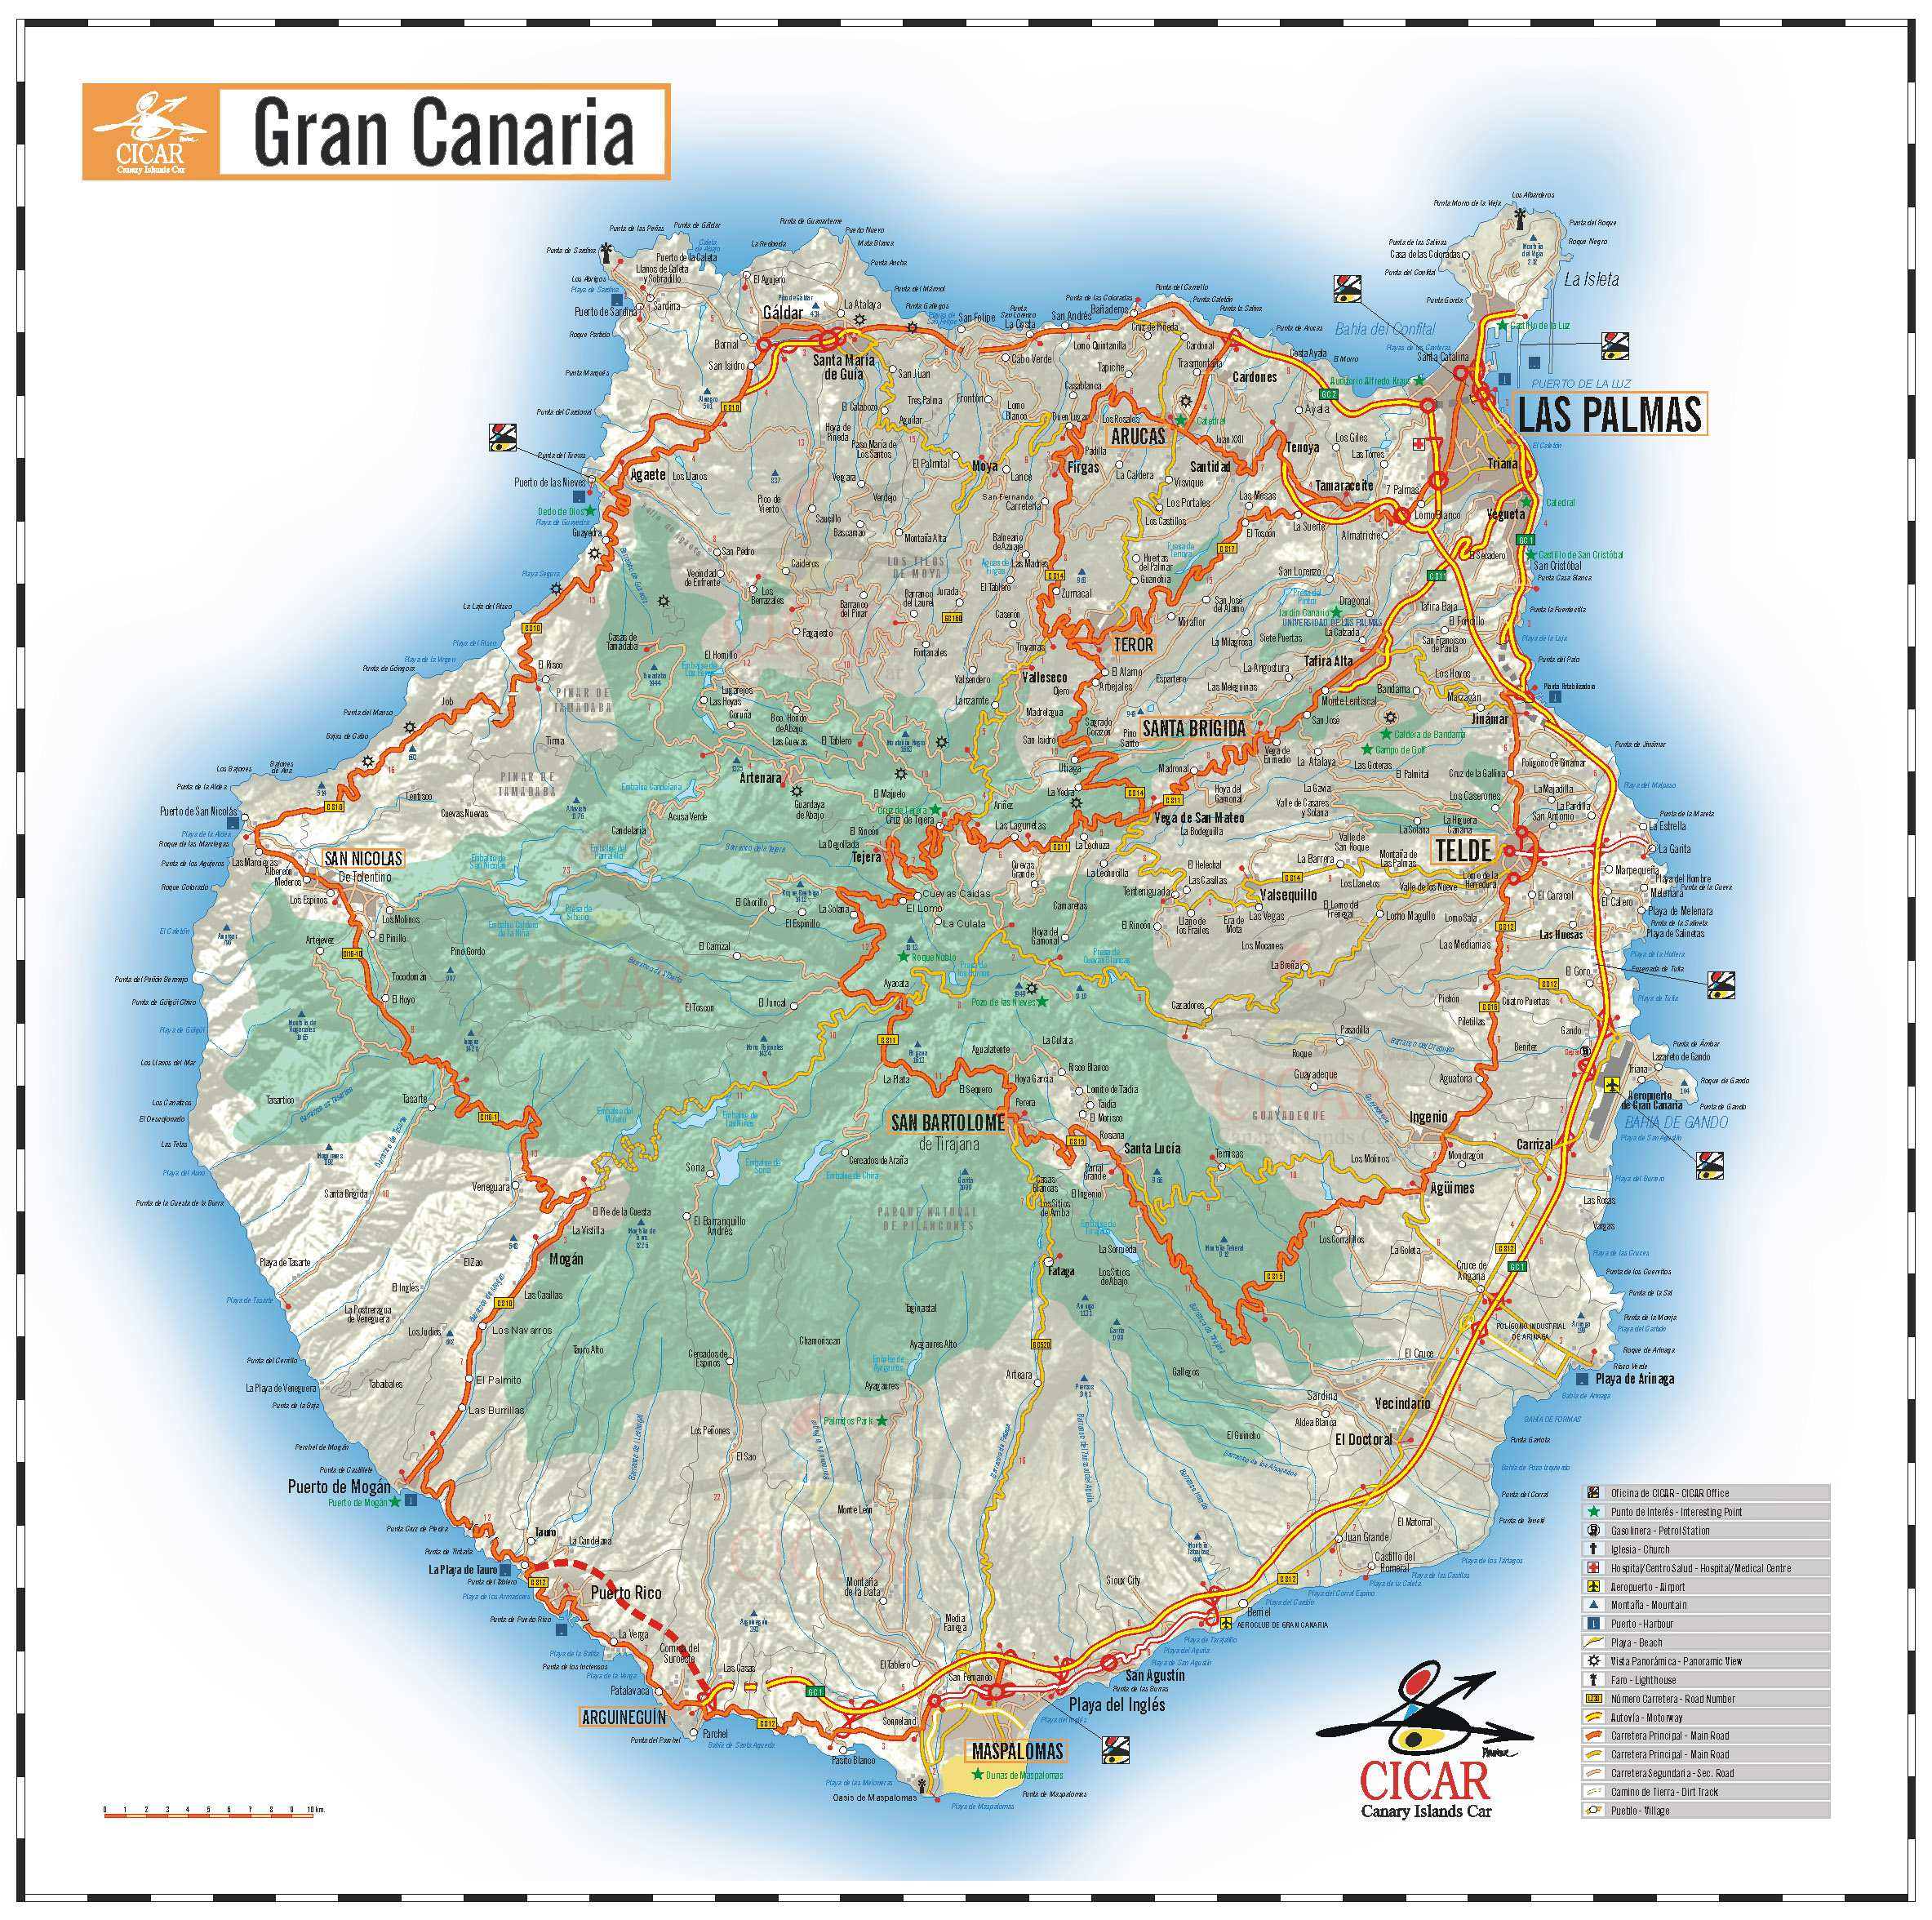 Map Gran Canaria Large Gran Canaria Maps for Free Download and Print | High